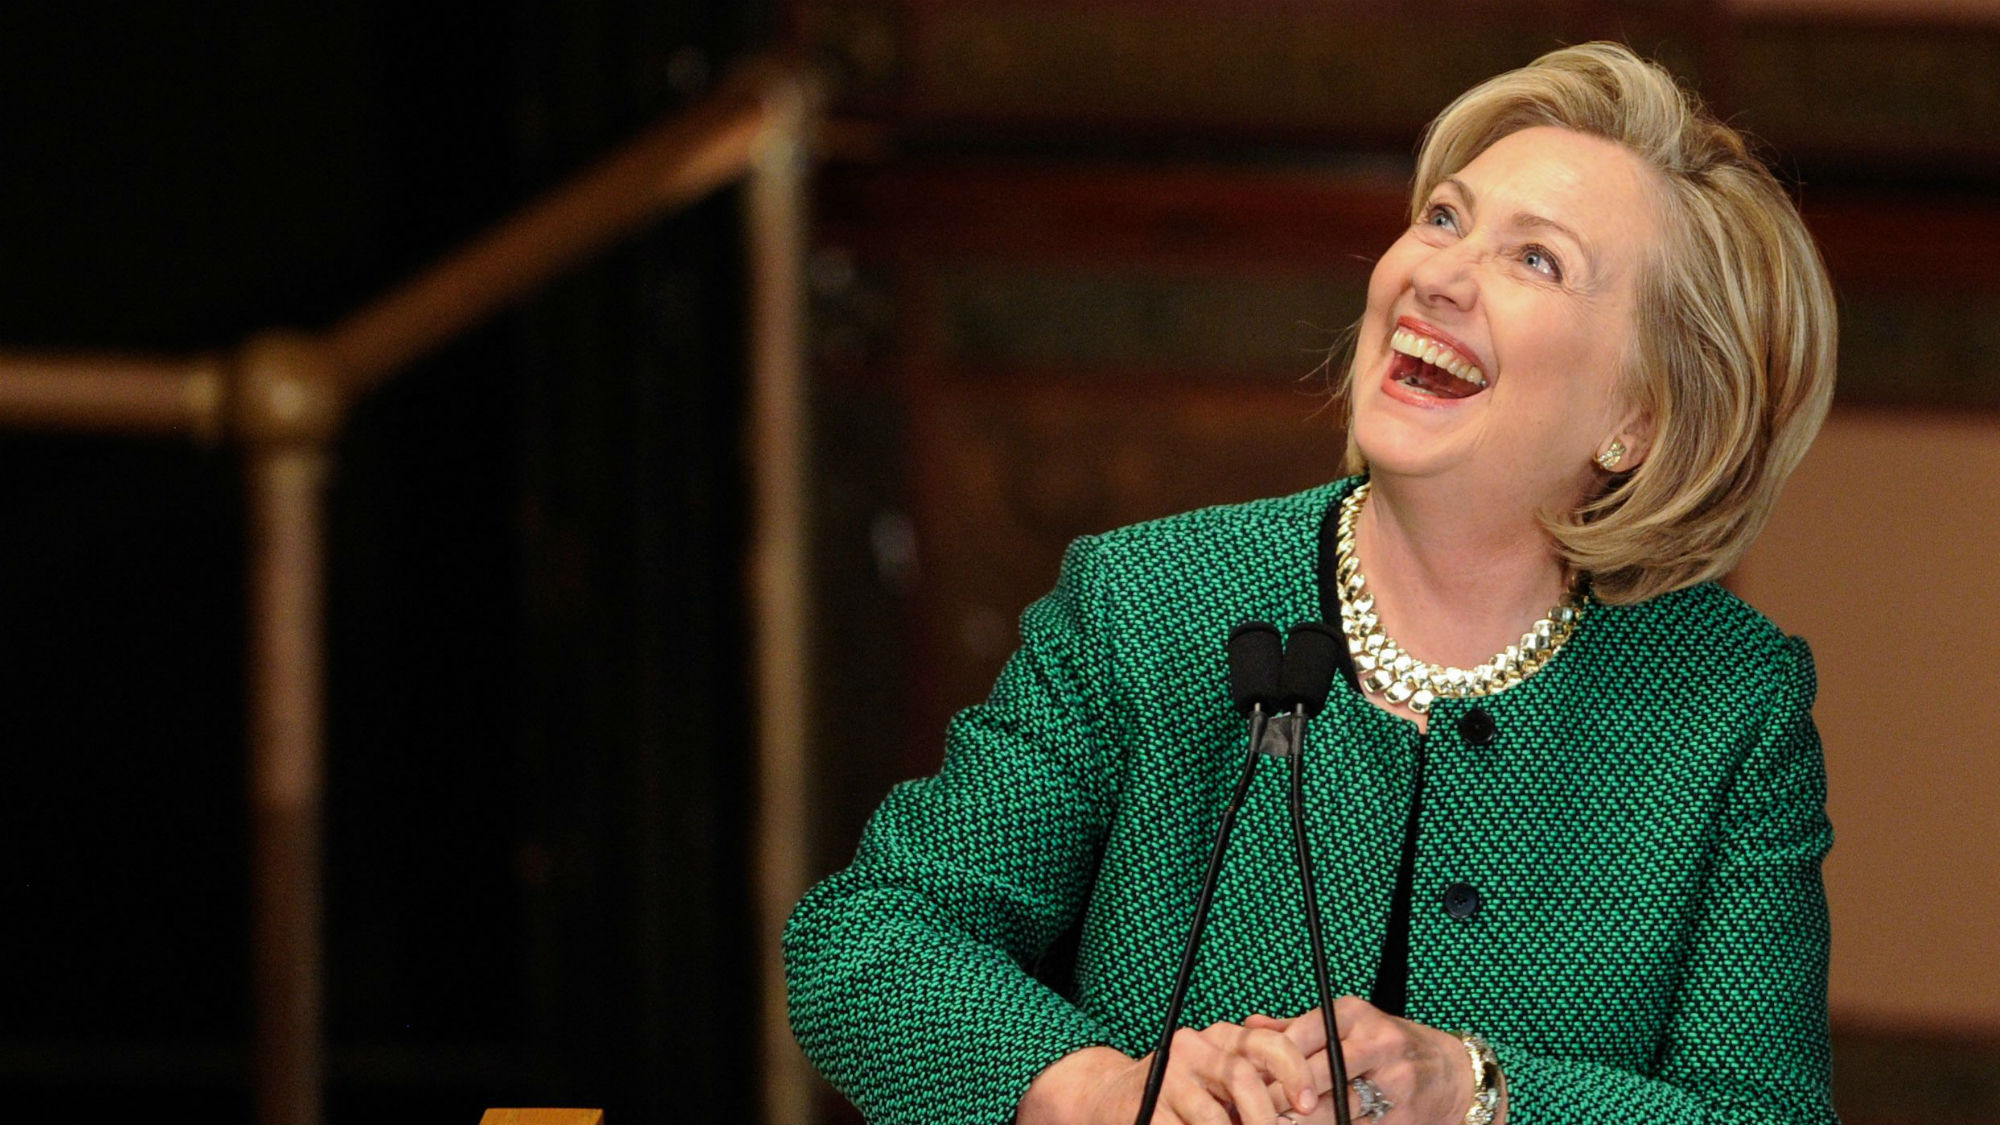 Hillary Clinton is officially back in politics